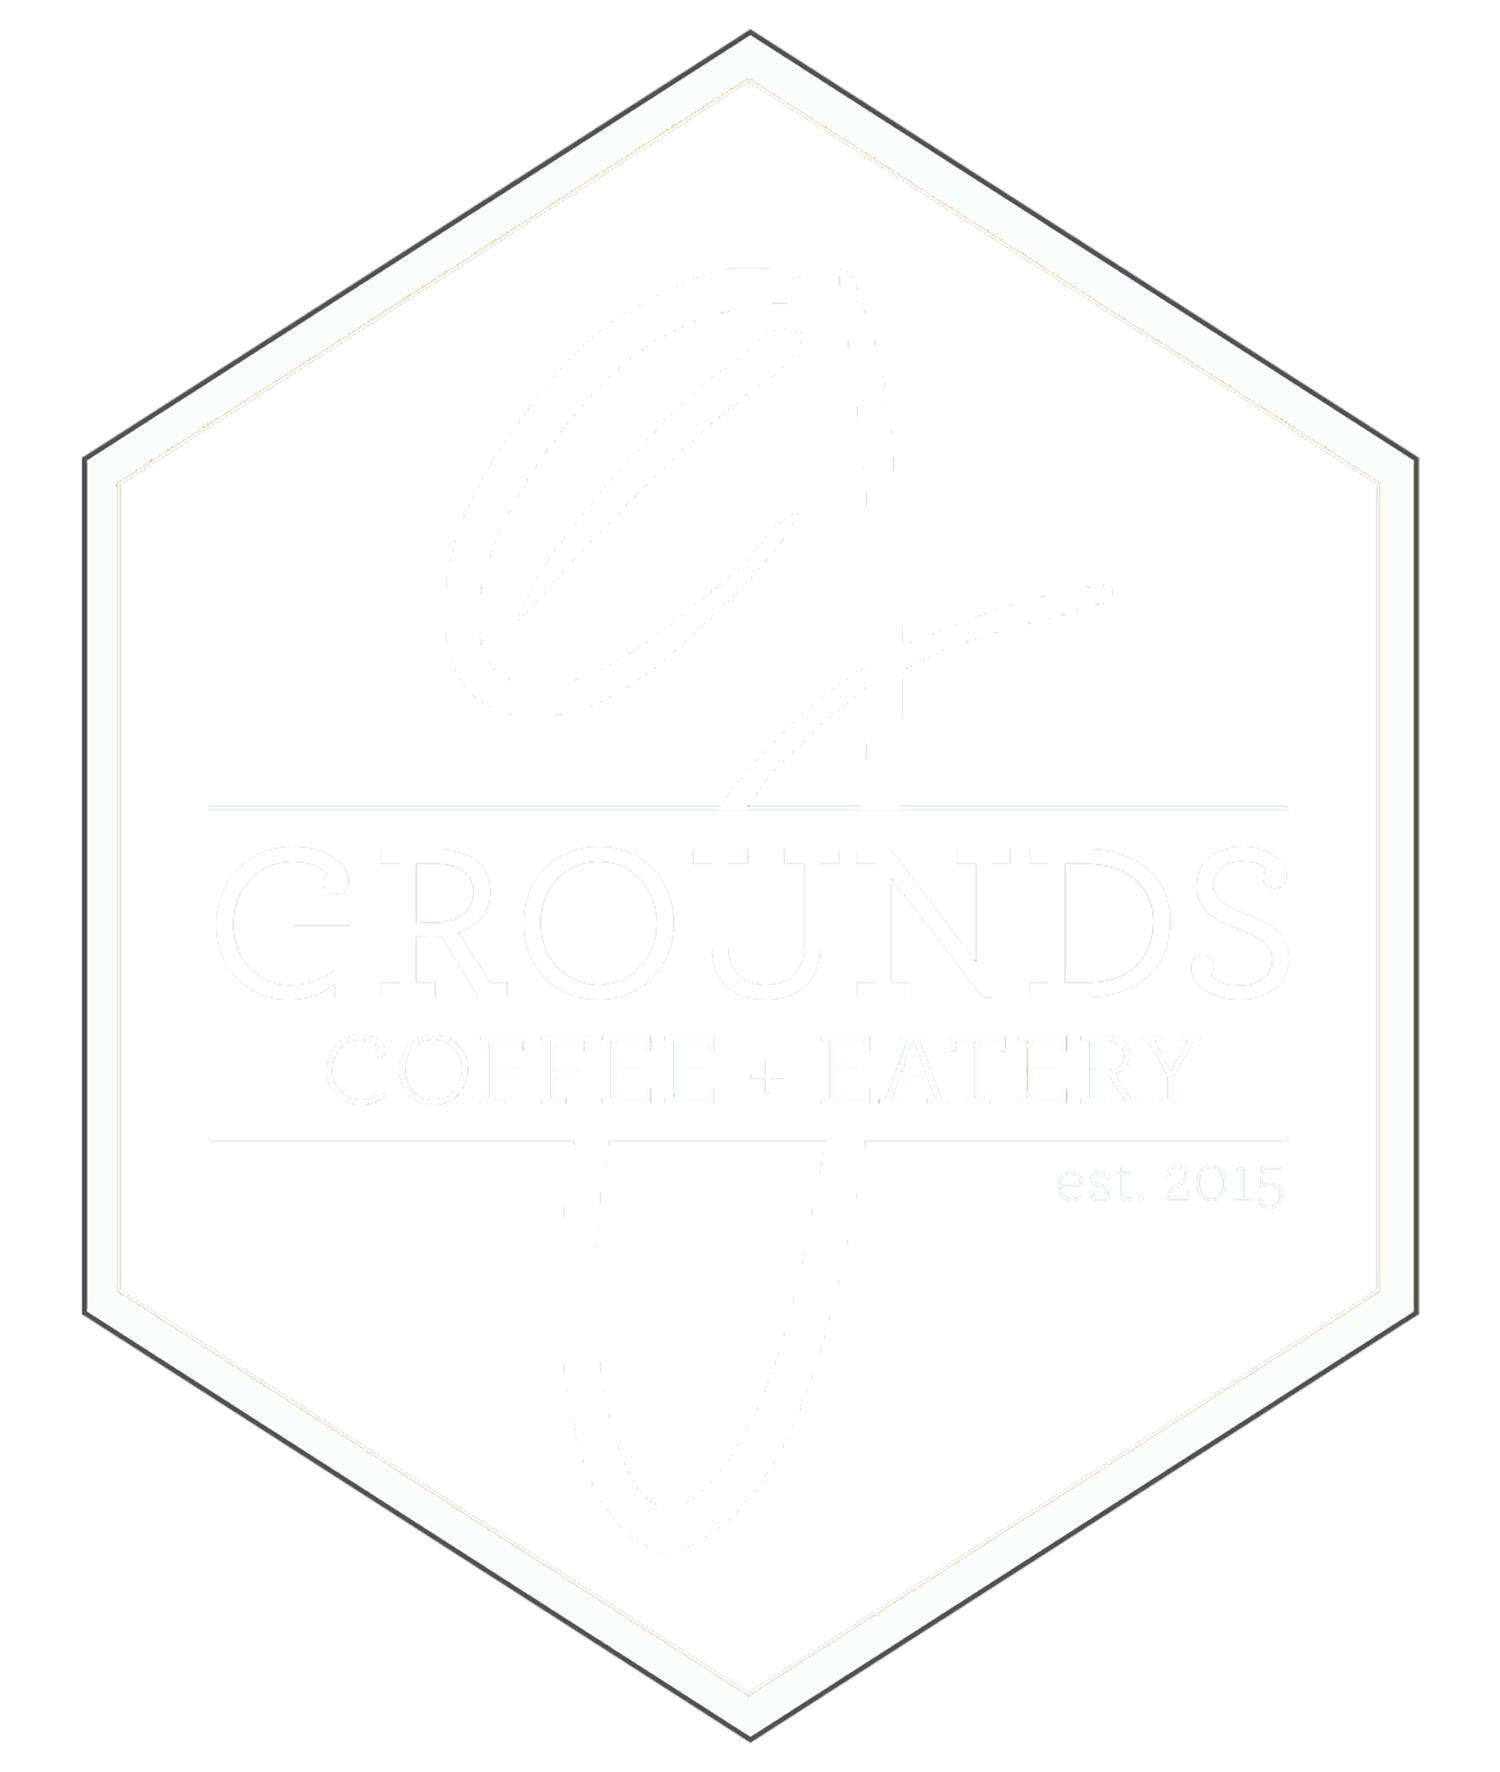 Grounds Cafe